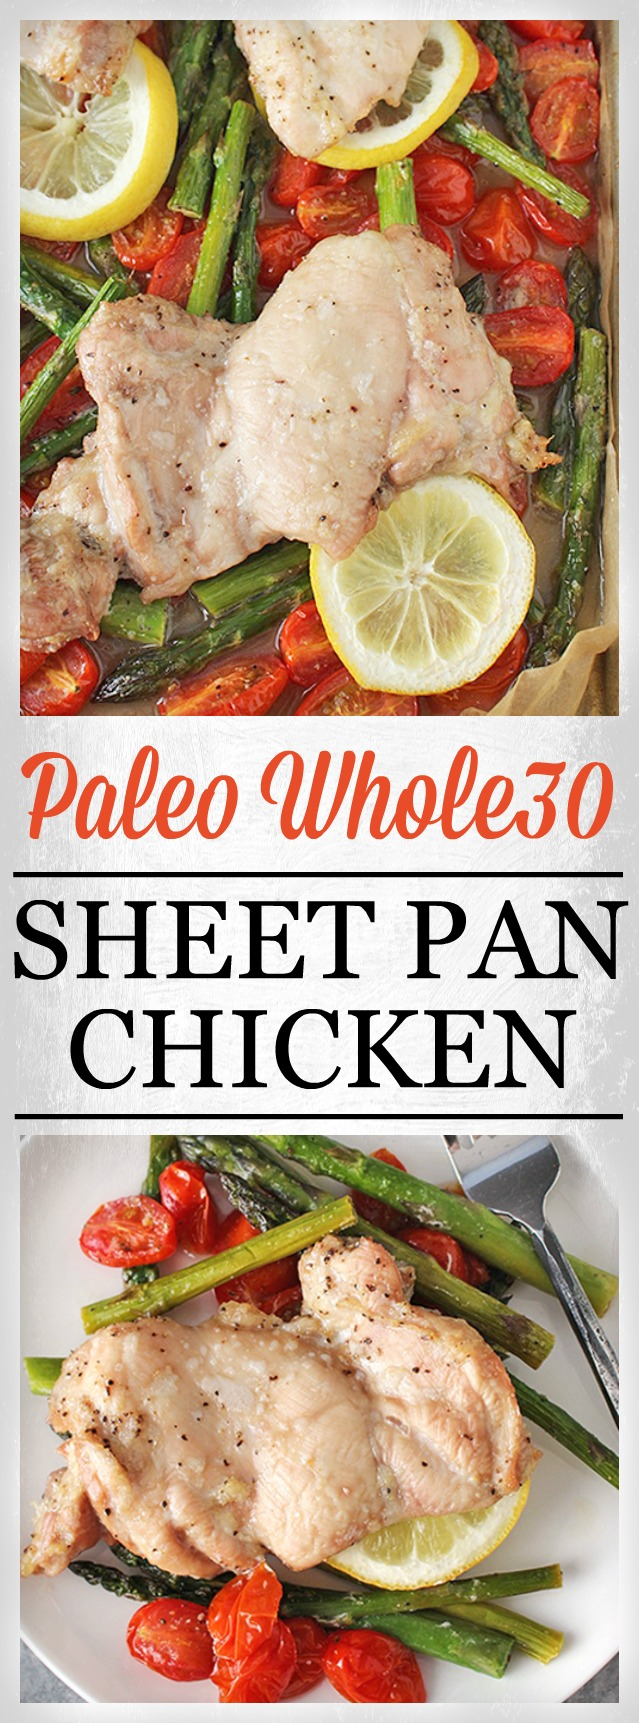 Paleo Whole30 Sheet Pan Dinner